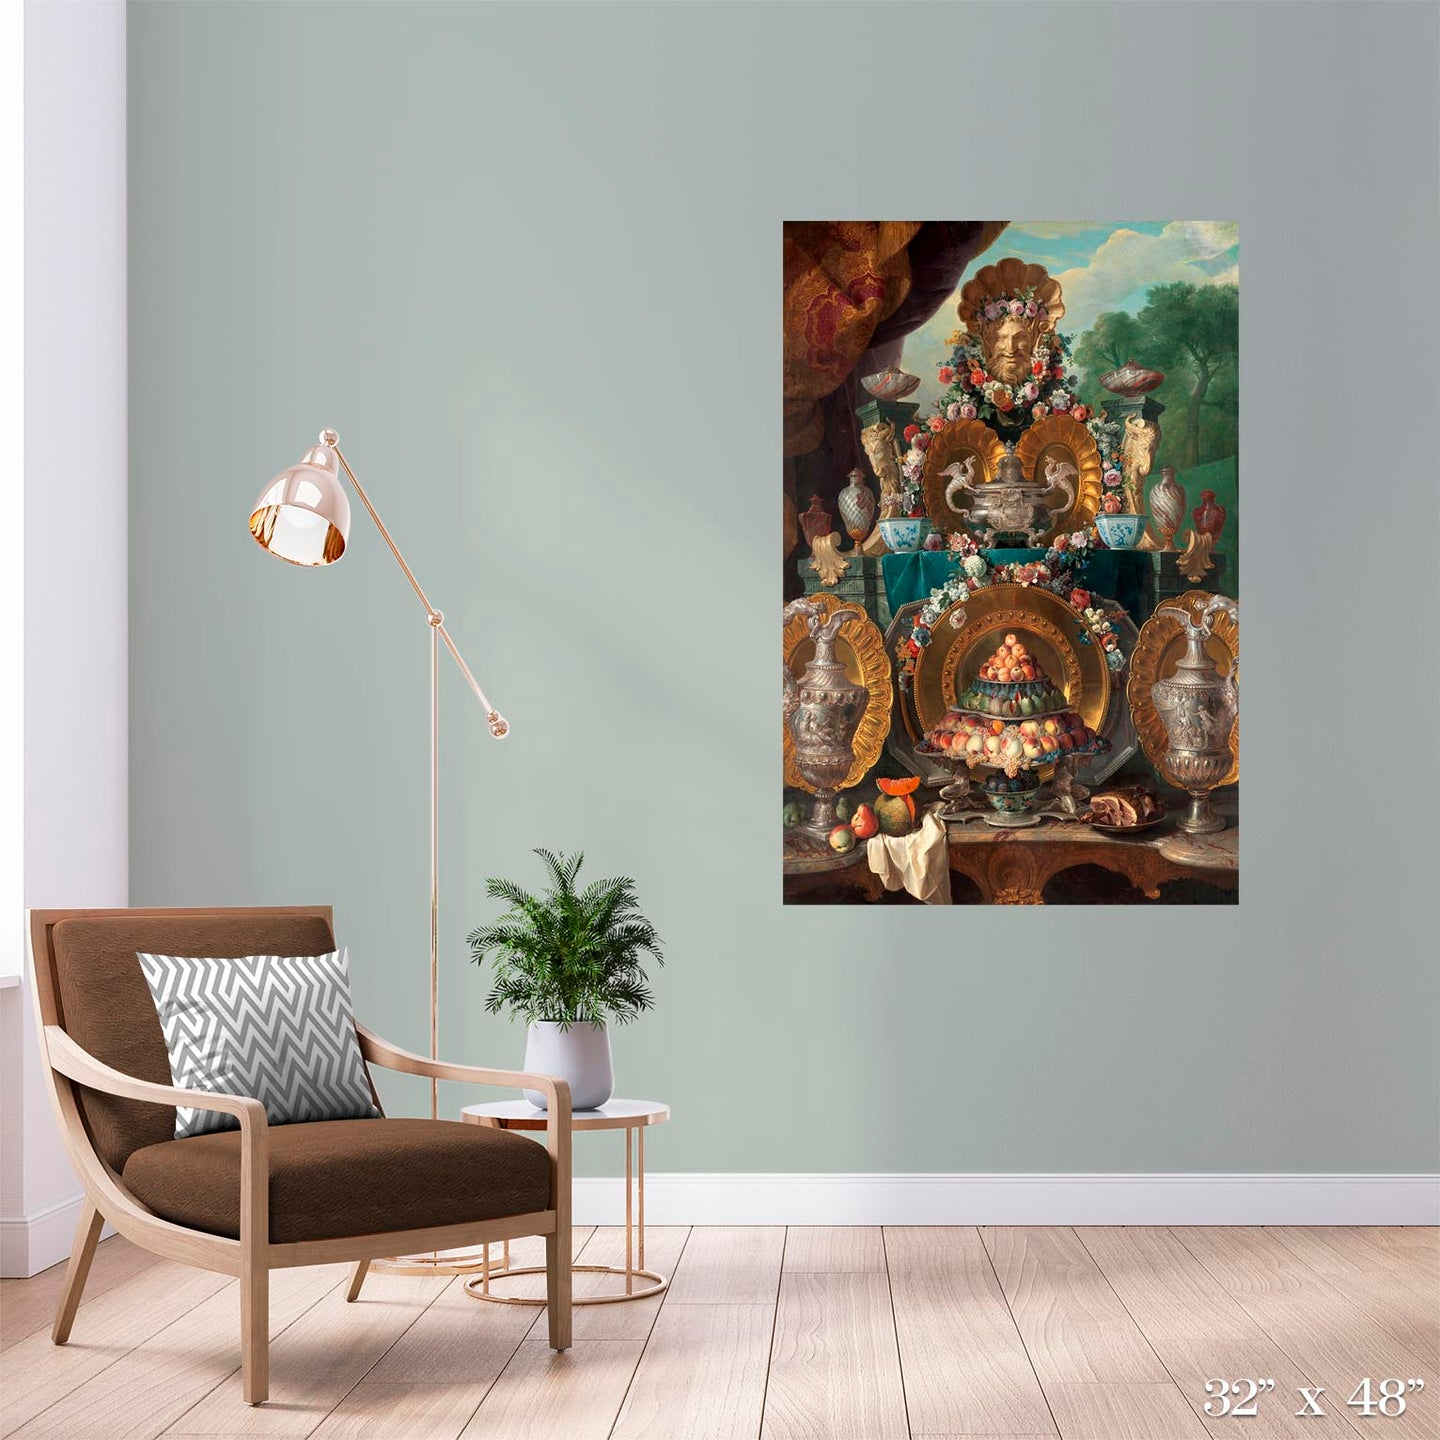 Still Life with Silver Colossal Art Print